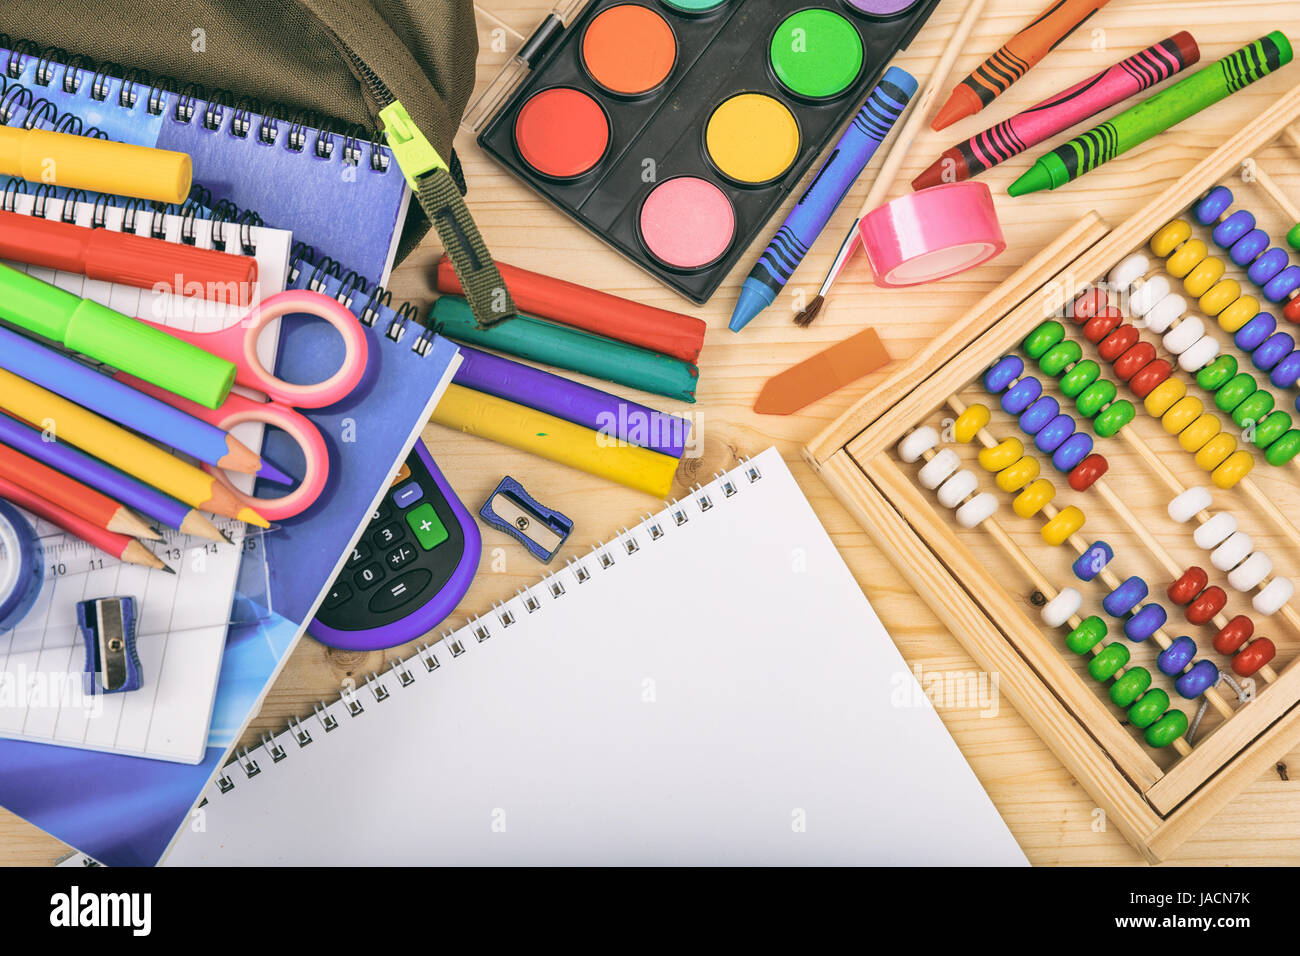 Variety of school supplies on wooden background Stock Photo